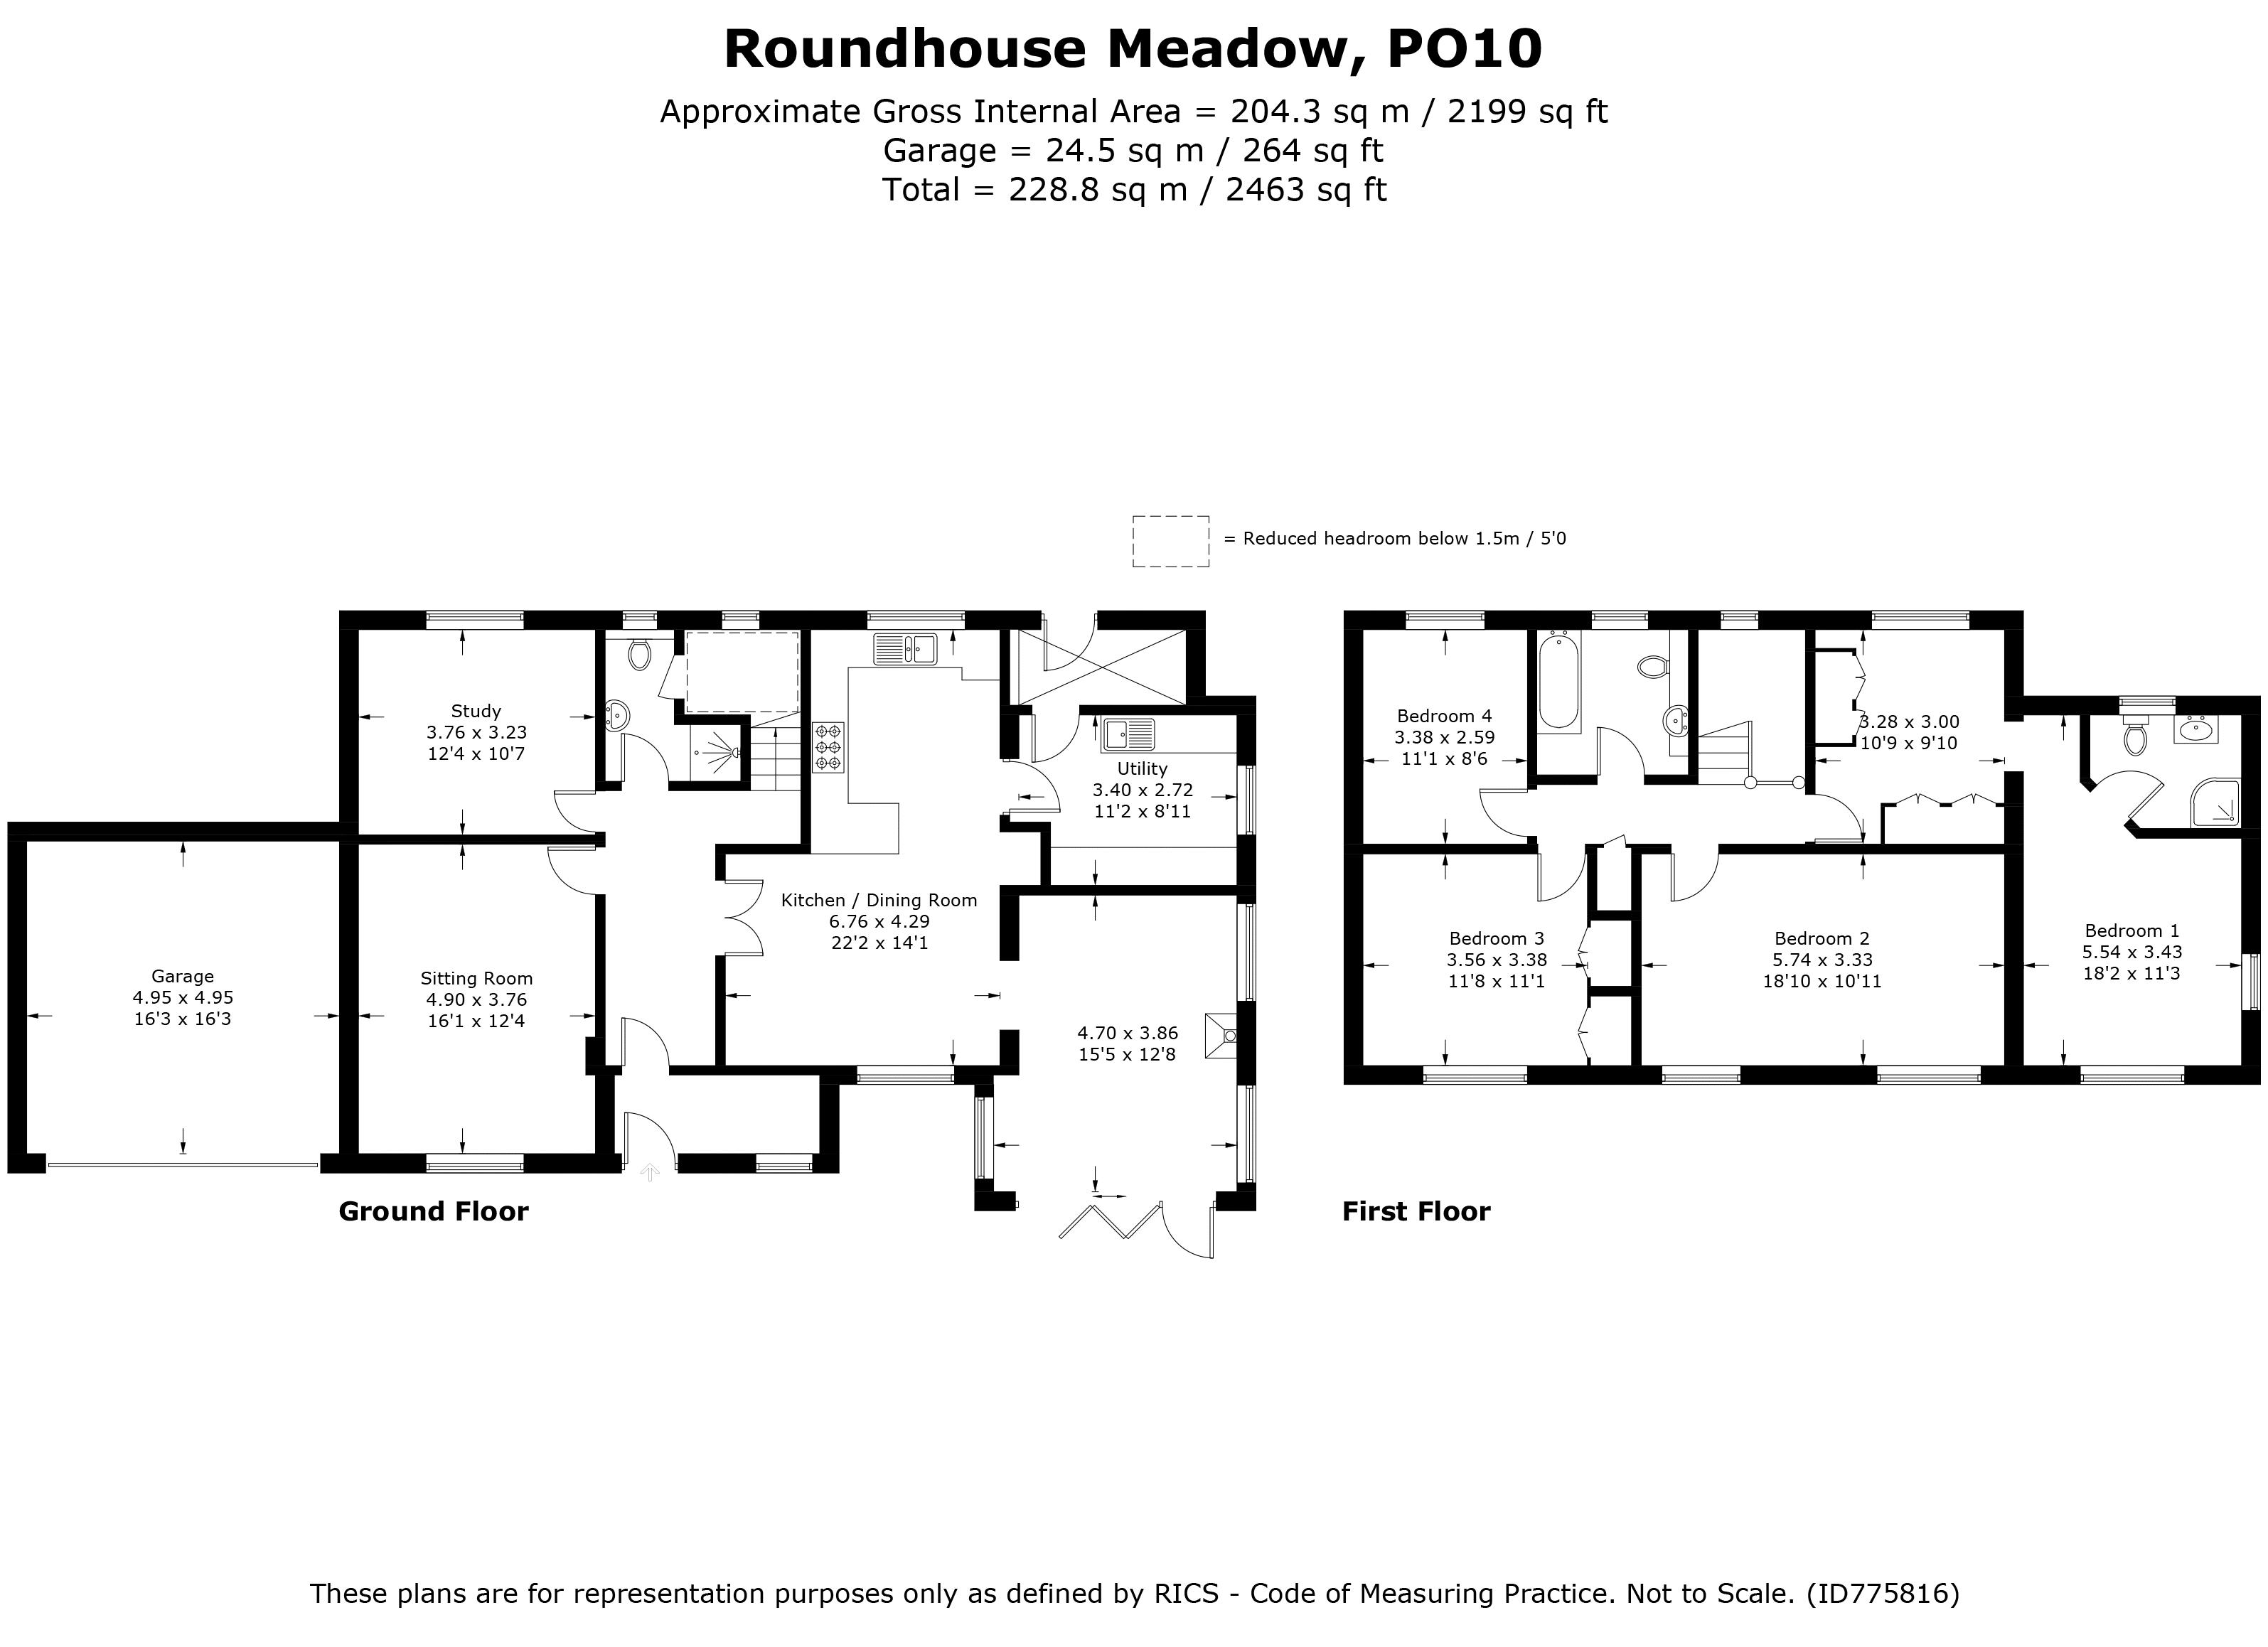 Roundhouse Meadow